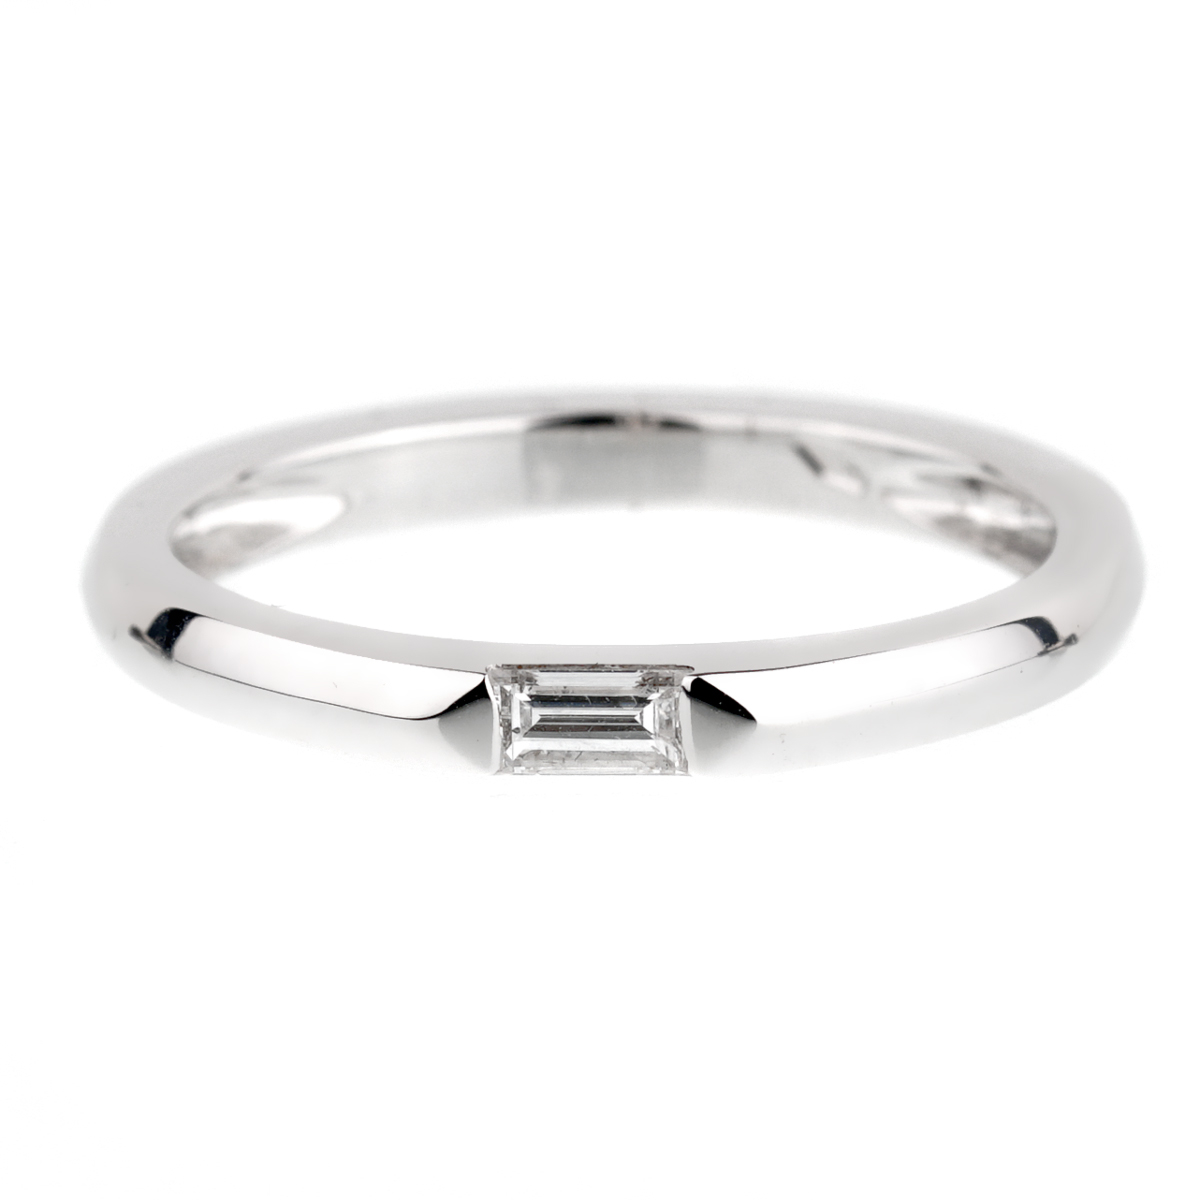 Chimento White Gold Diamond Baguette Ring - Chimento Jewelry